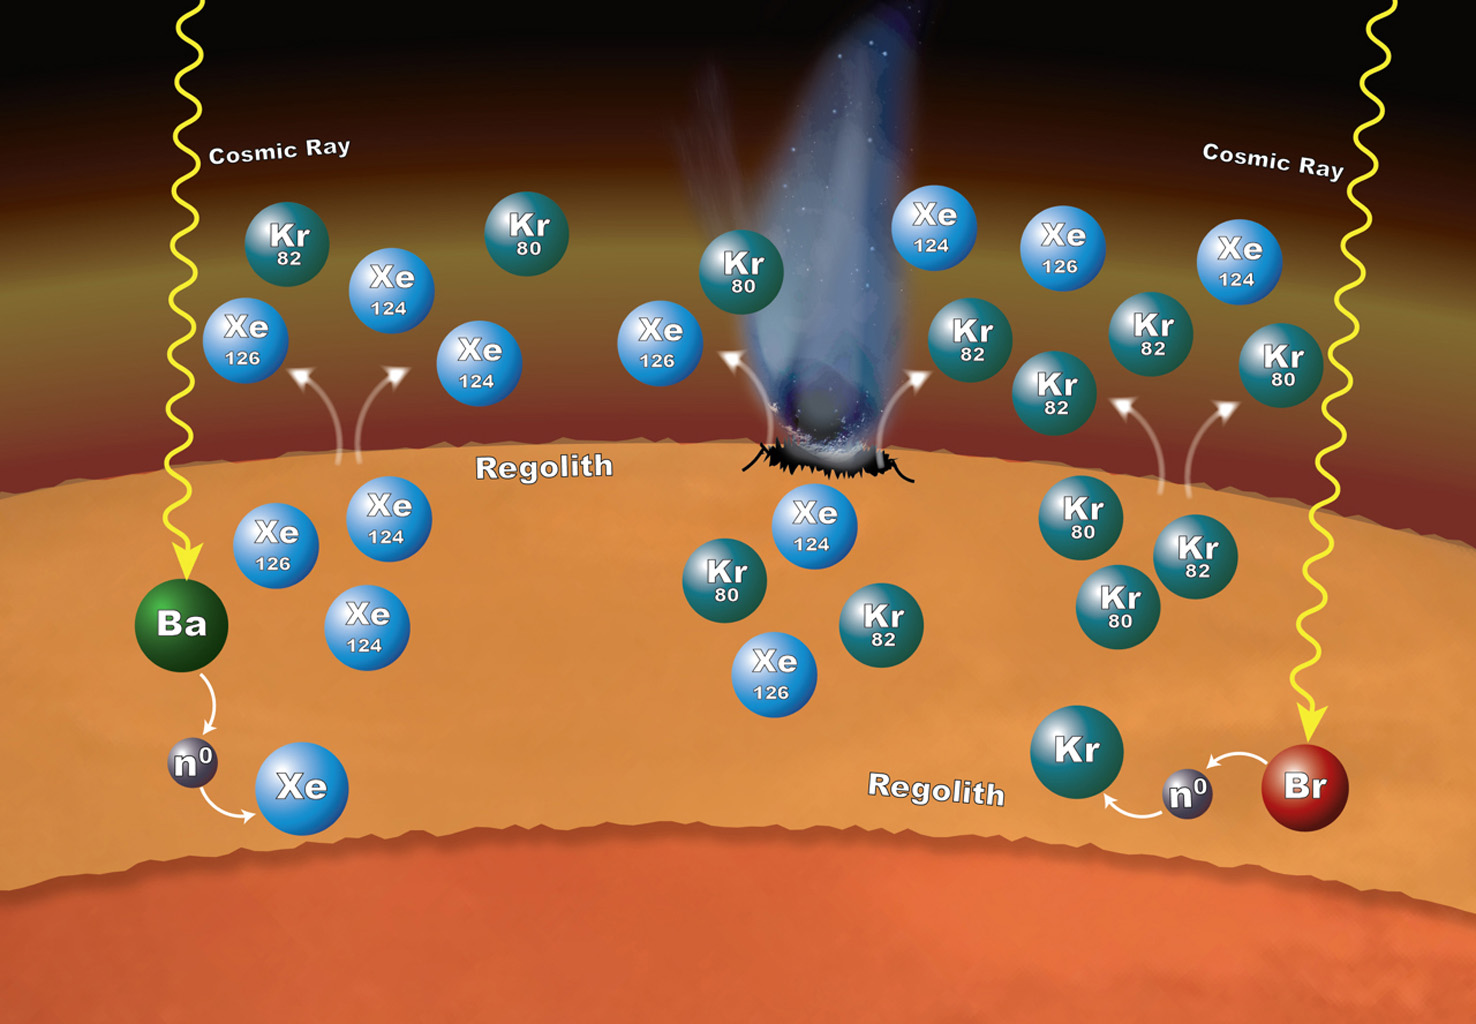 NASA's Sample Analysis at Mars (SAM) laboratory suite inside NASA's Curiosity Mars rover has measured the isotope ratios of xenon and krypton in Mars' atmosphere and can explain why they are more abundant in the Martian atmosphere than expected.